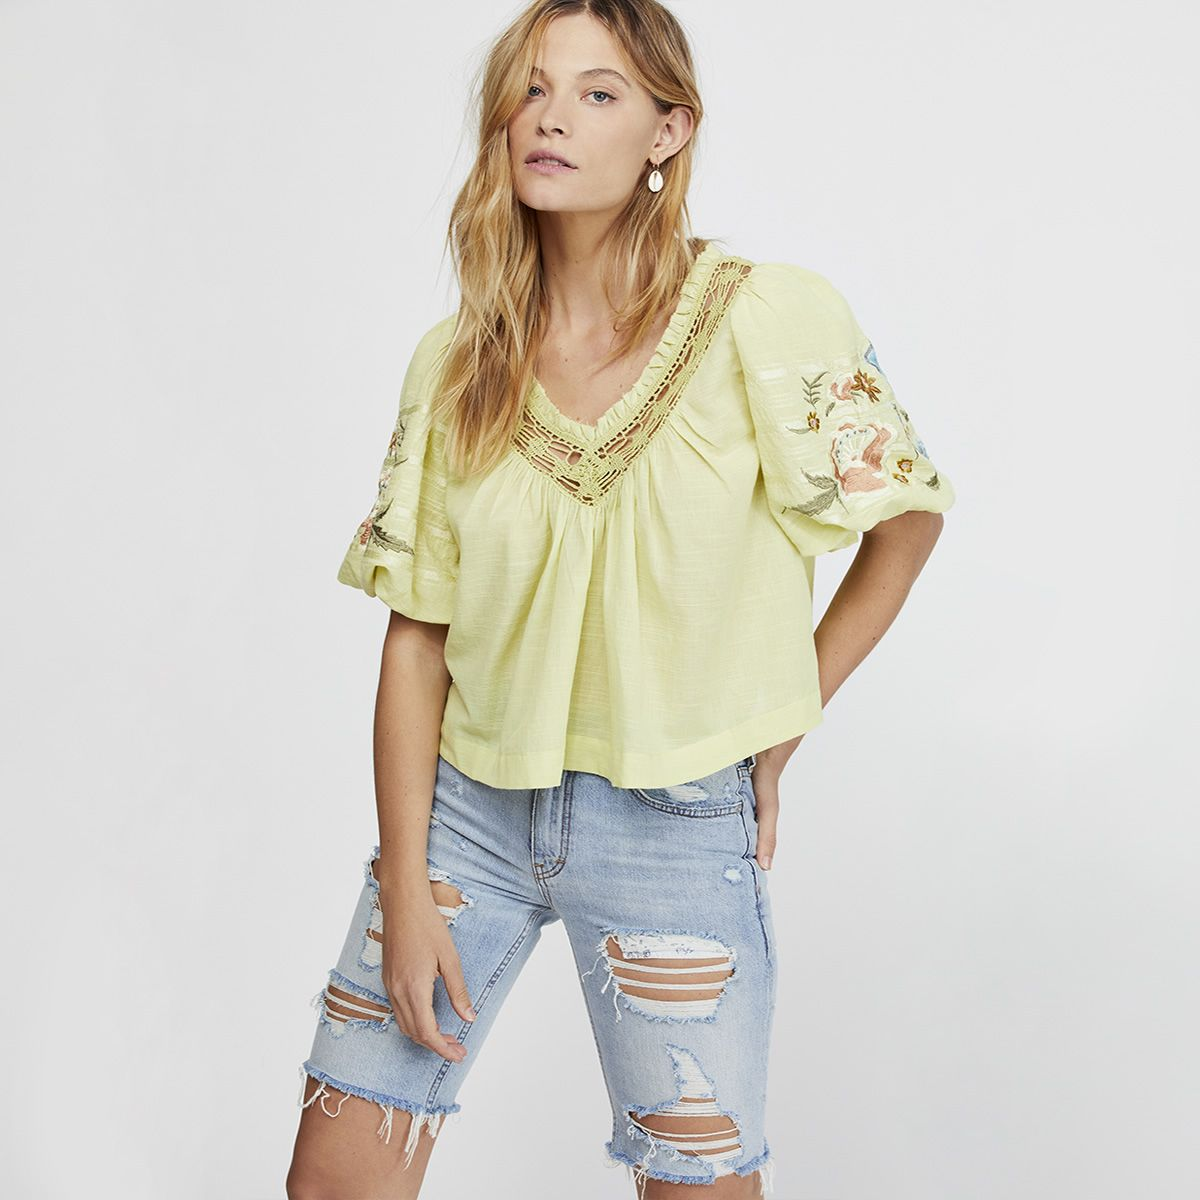 4549f3a4187d Free People Womens Tops - Macy's